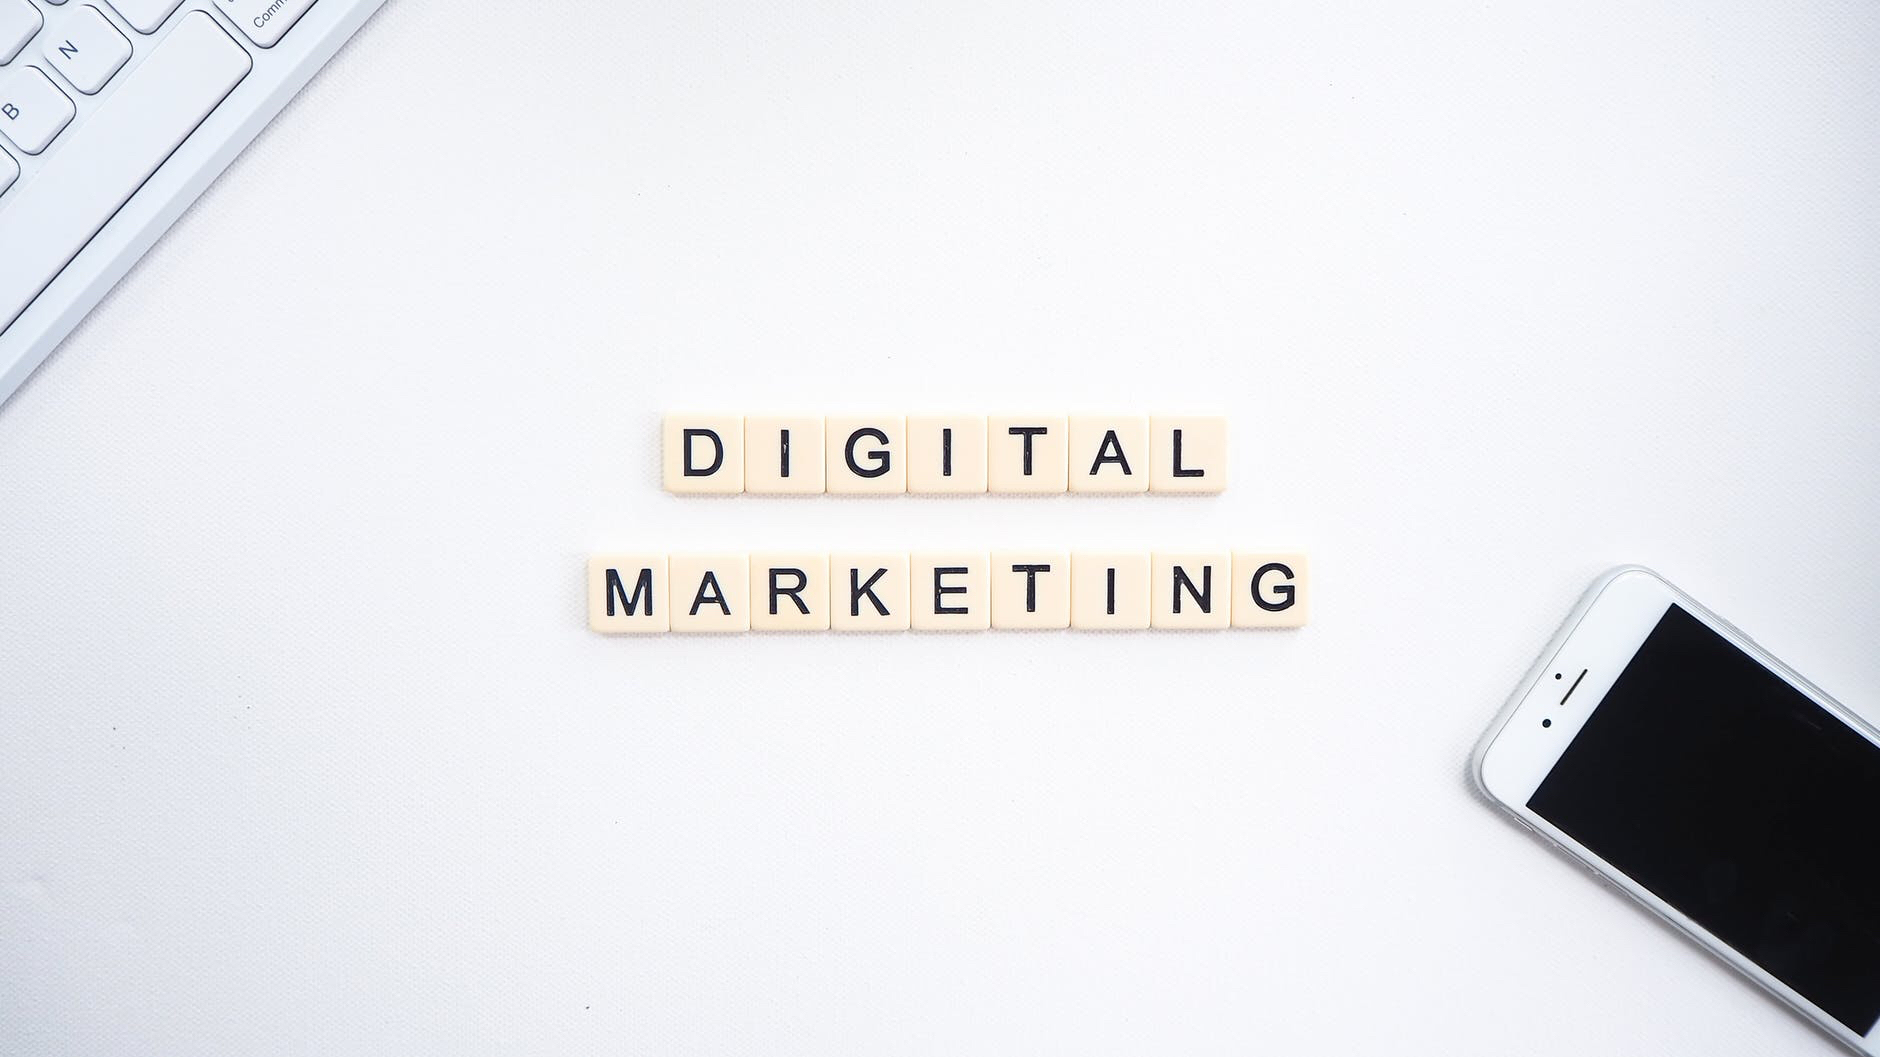 Digital Marketing & Event Marketing